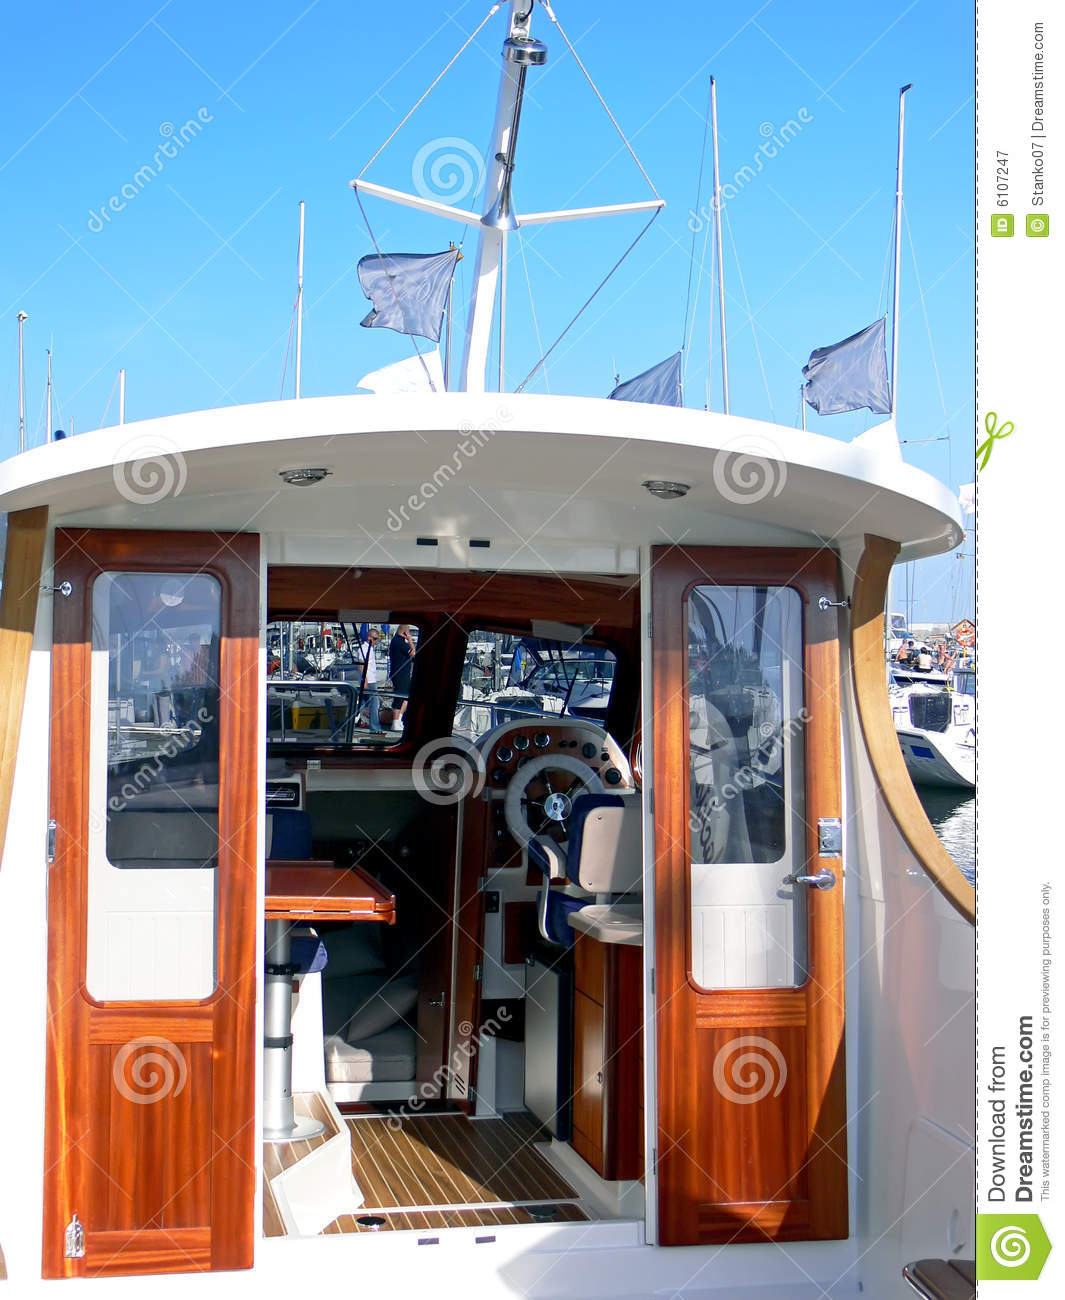 Motor Boat Wheelhouse Royalty Free Stock Photography - Image: 6107247